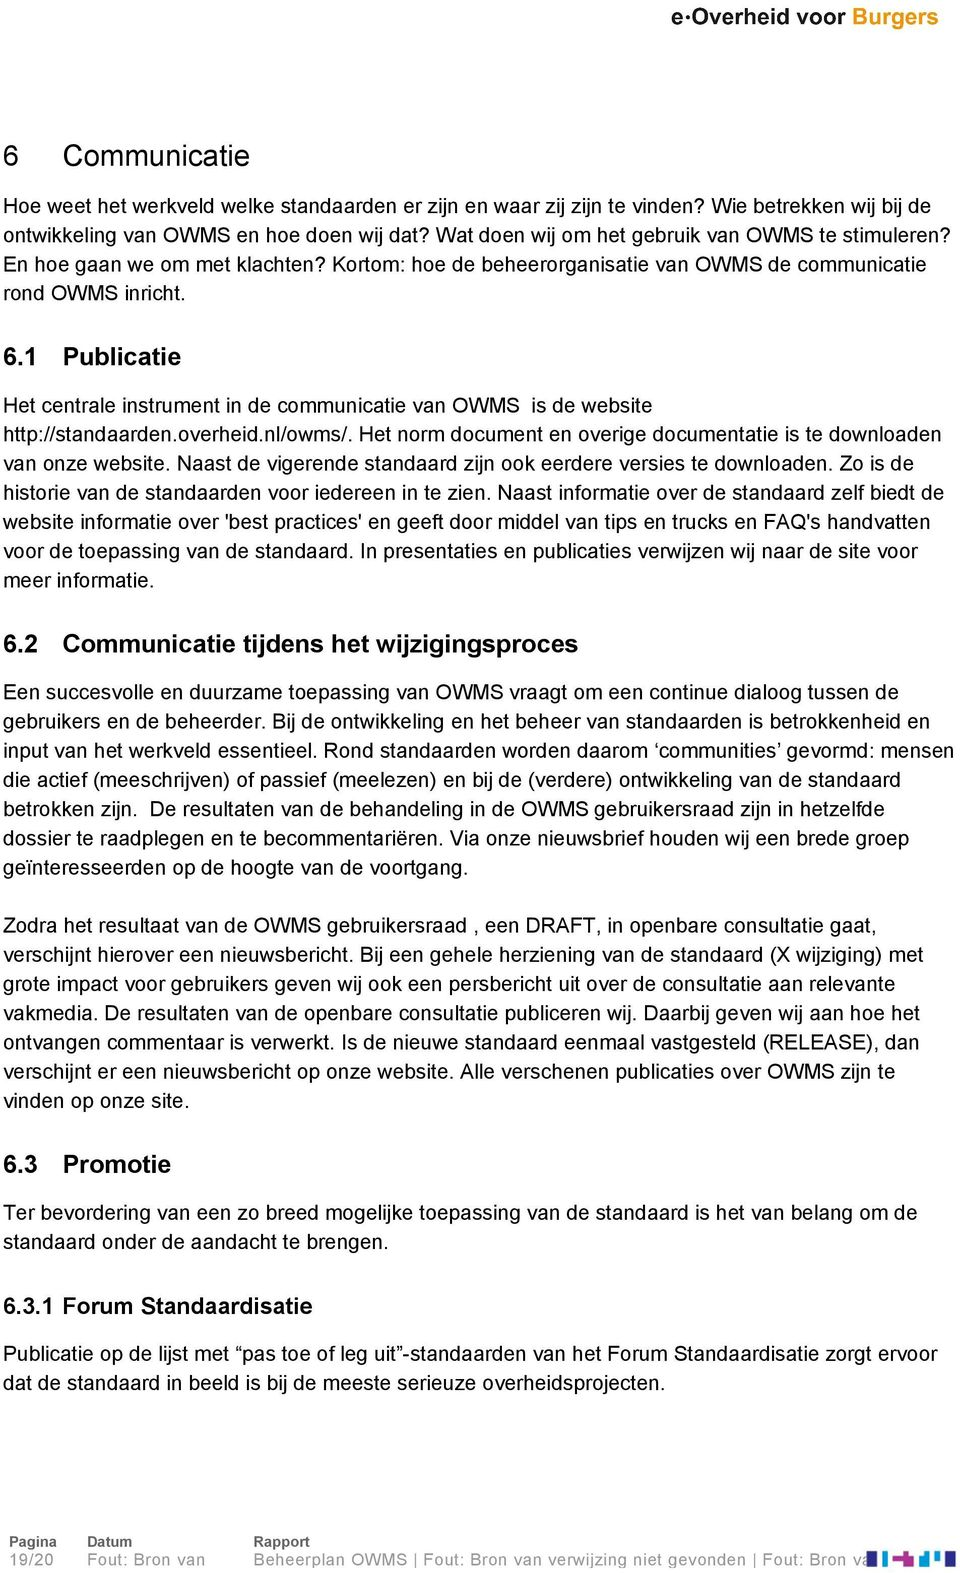 1 Publicatie Het centrale instrument in de communicatie van OWMS is de website http://standaarden.overheid.nl/owms/. Het norm document en overige documentatie is te downloaden van onze website.